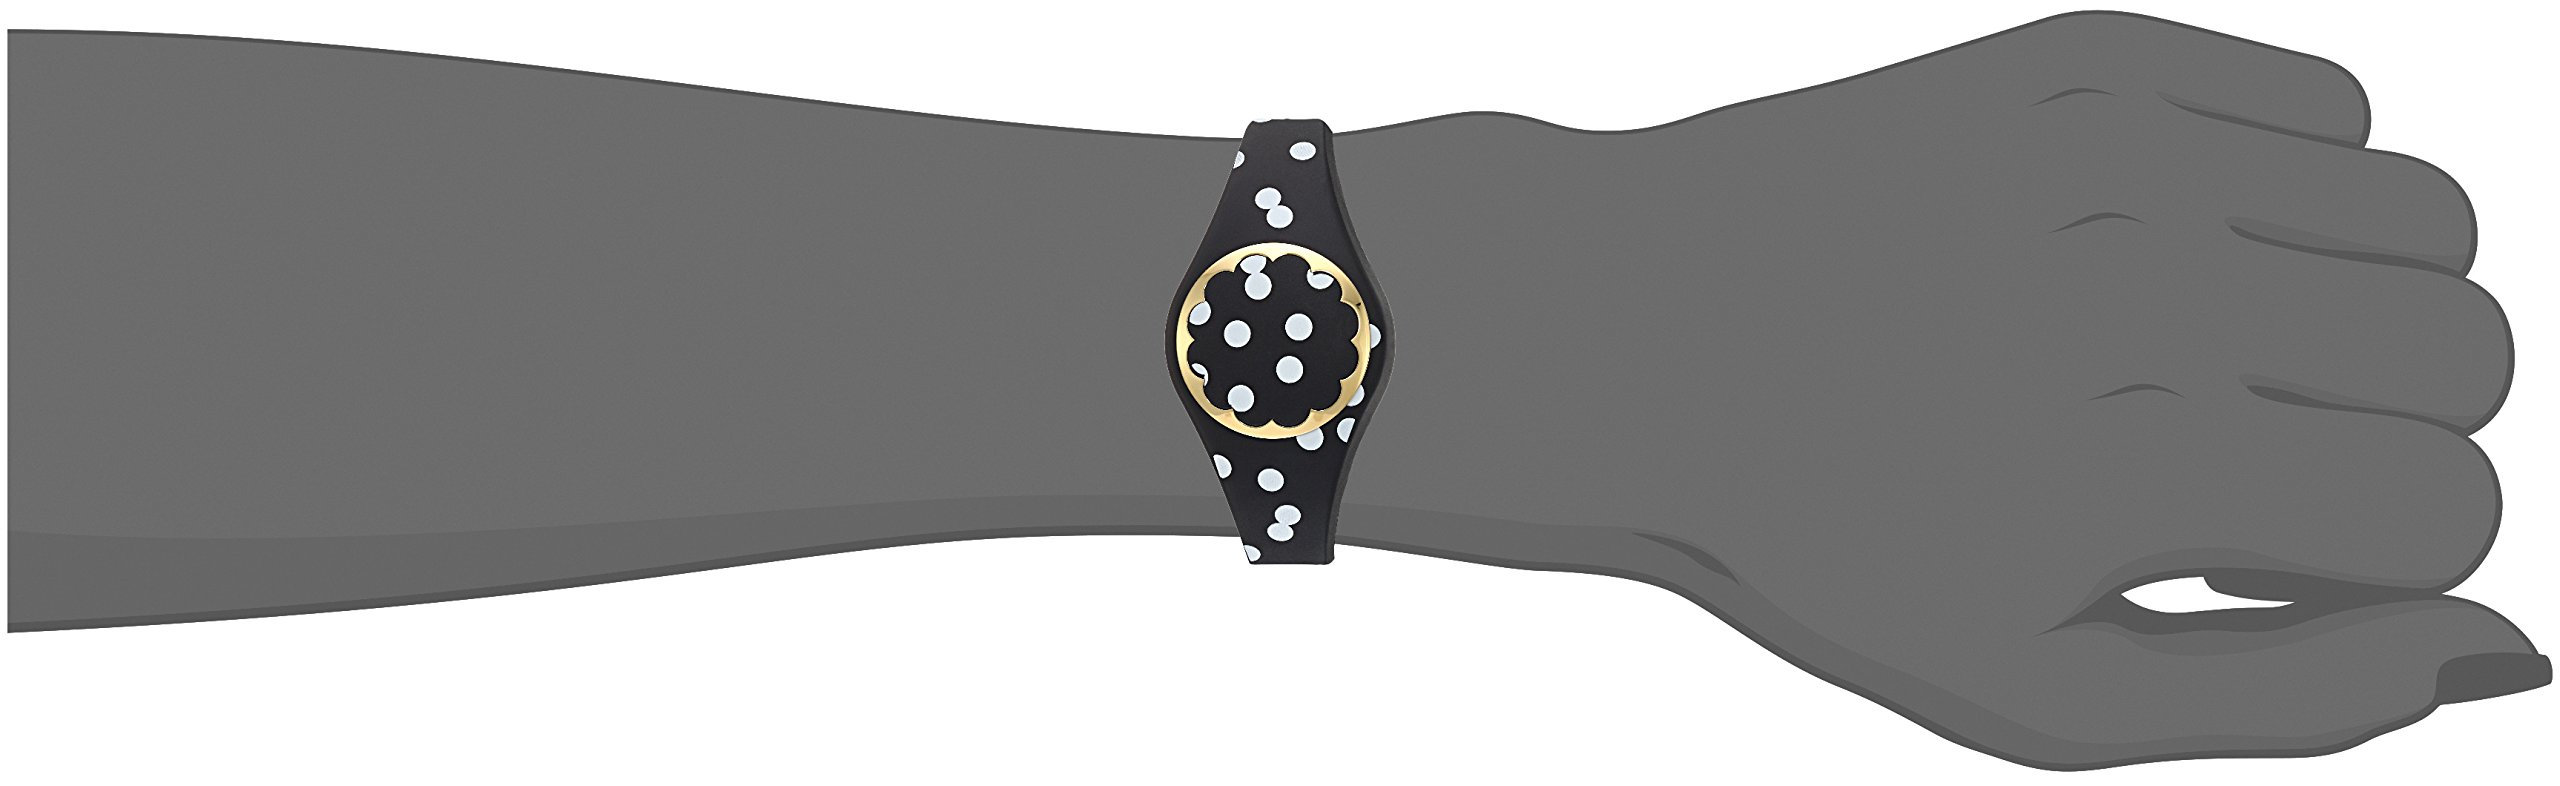 Kate Spade New York black and white dot scallop activity tracker by Kate Spade New York (Image #7)